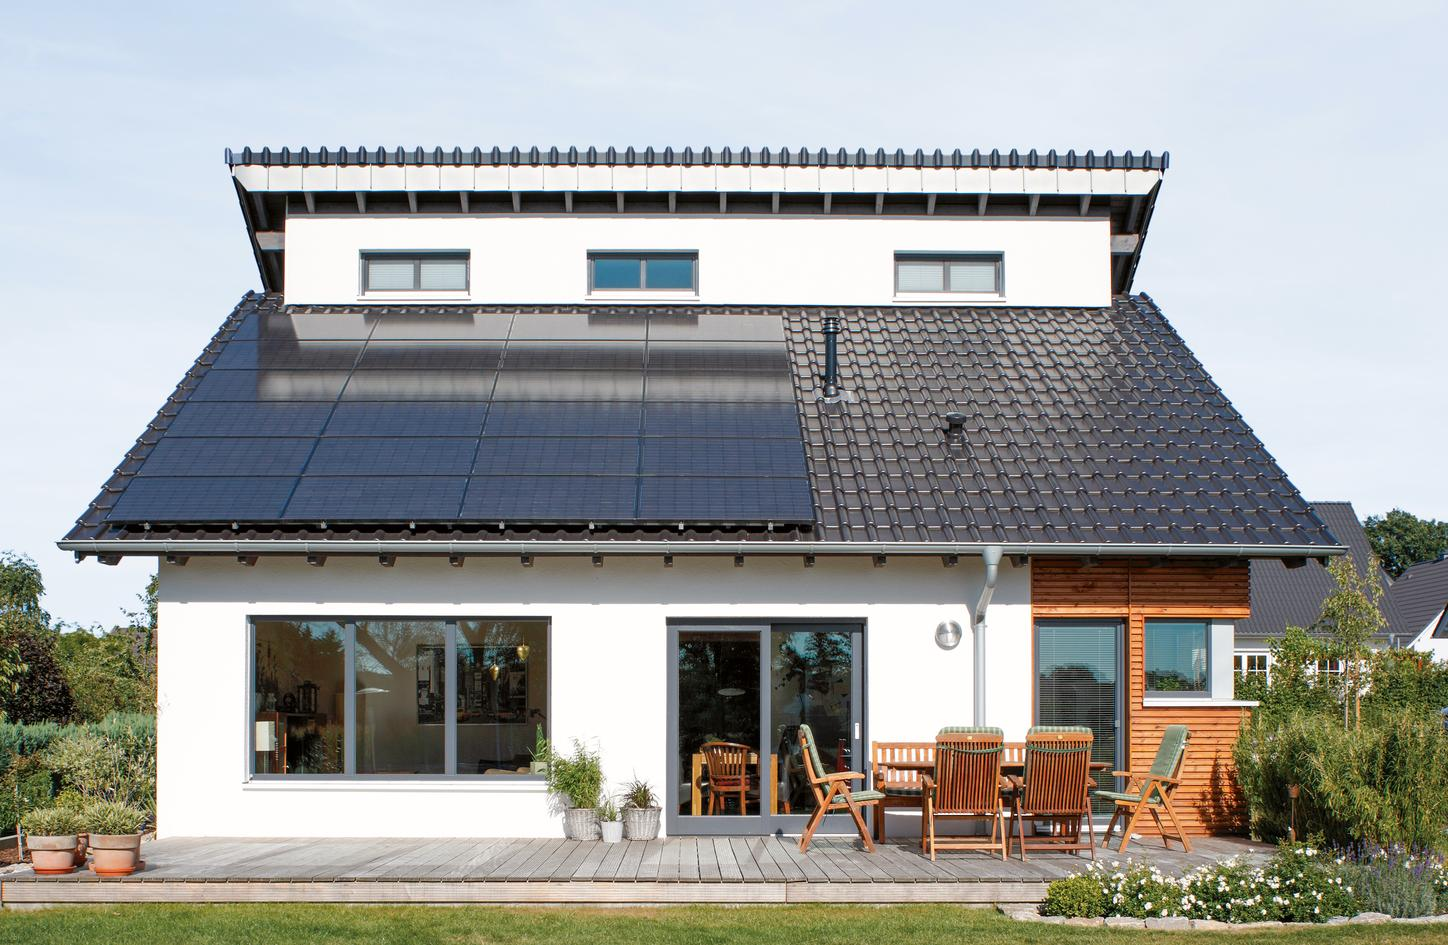 The image shows a house with photovoltaics.